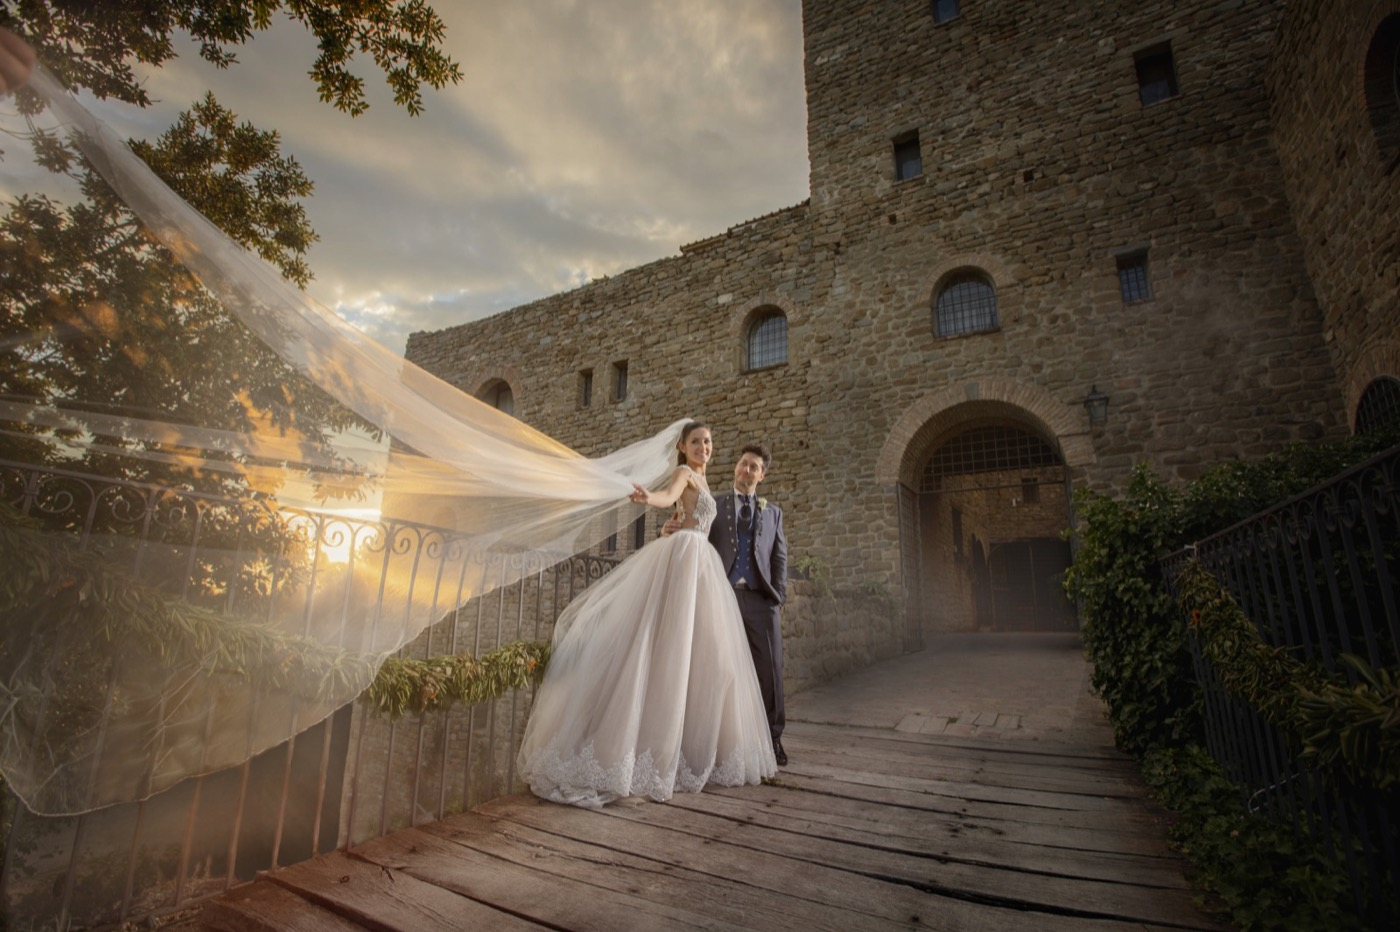 Claudio-Coppola-wedding-photographer-castello-rosciano-torgiano-57